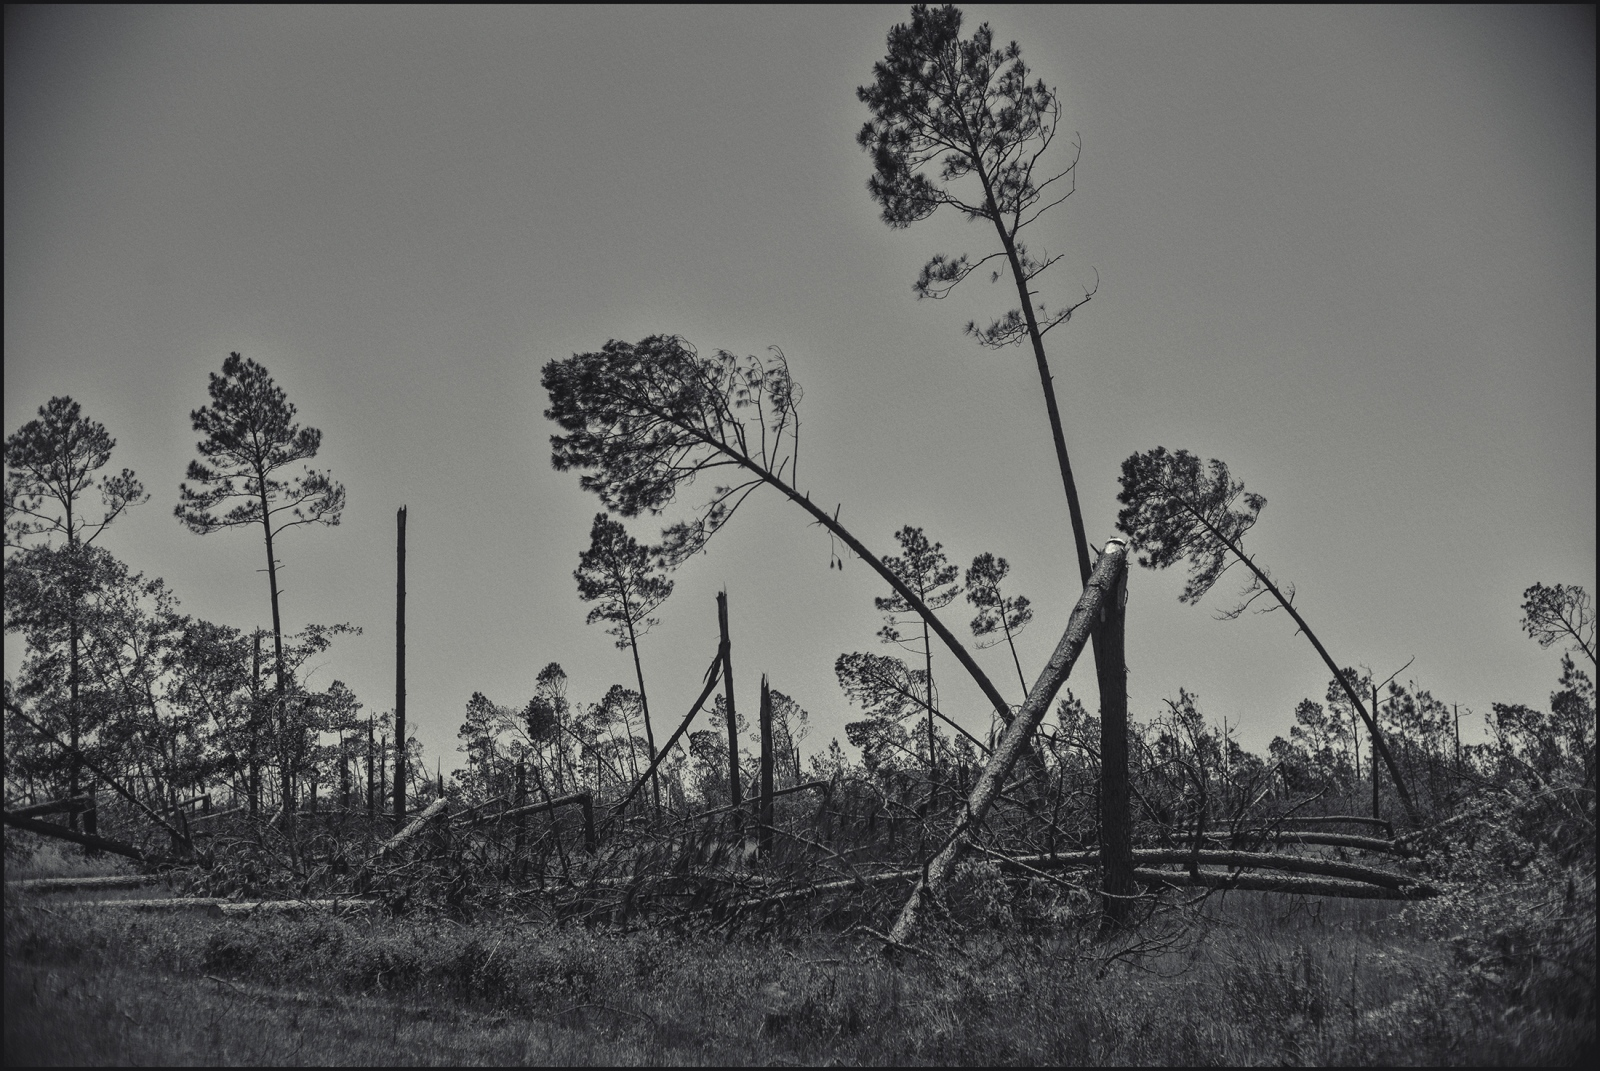 Trees bent from the Category 5 Hurricane Michael. County road just outside of Mexico Beach, FL, 2019.